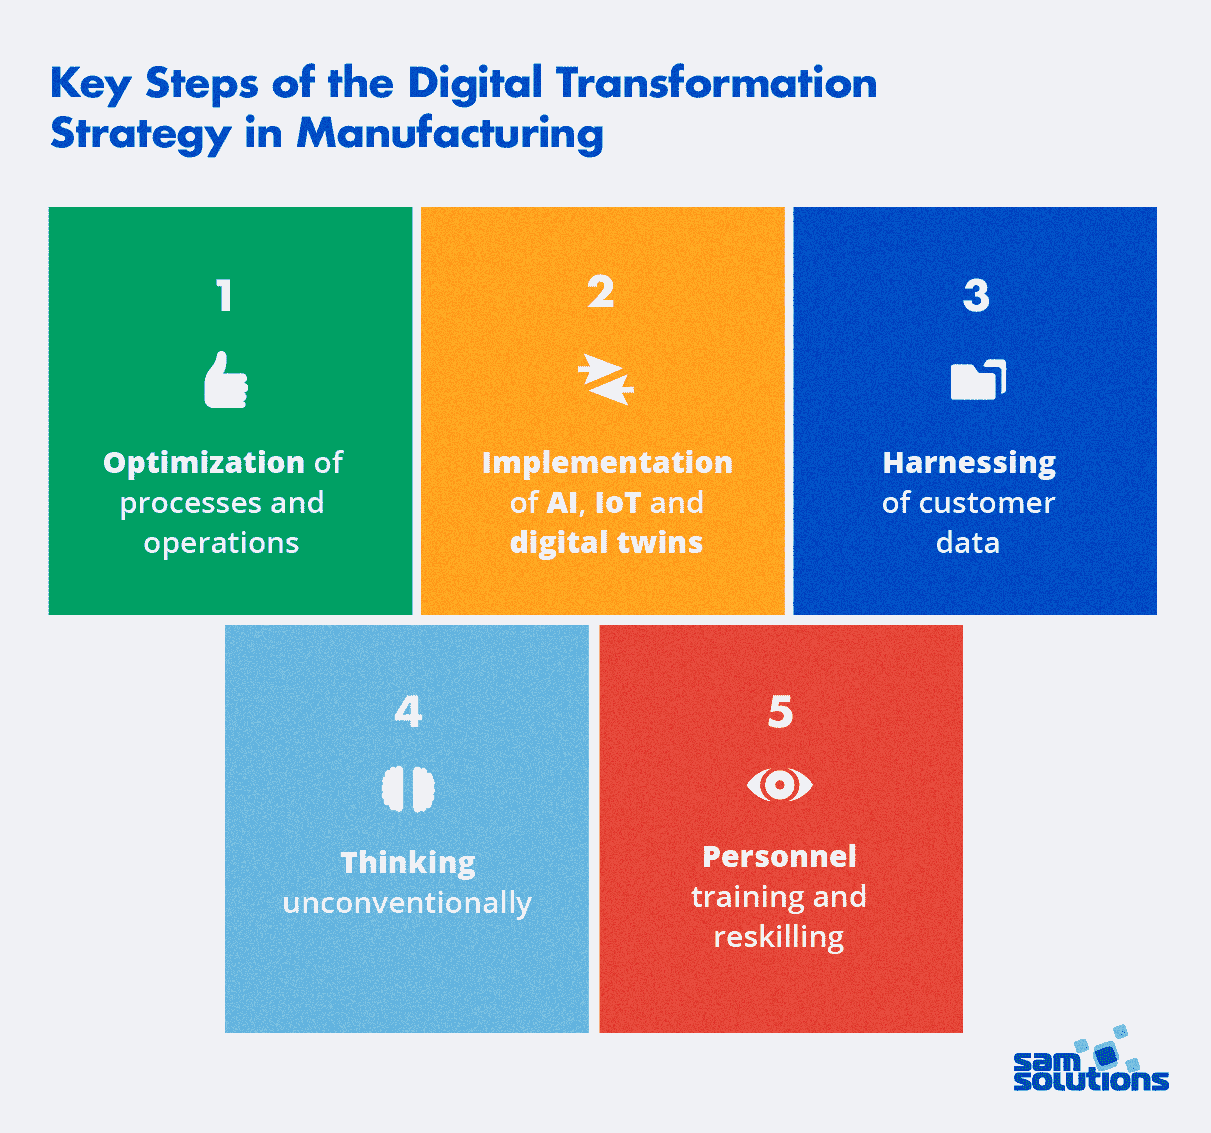 Steps-of-digital transformation-in-manufacturing-photo